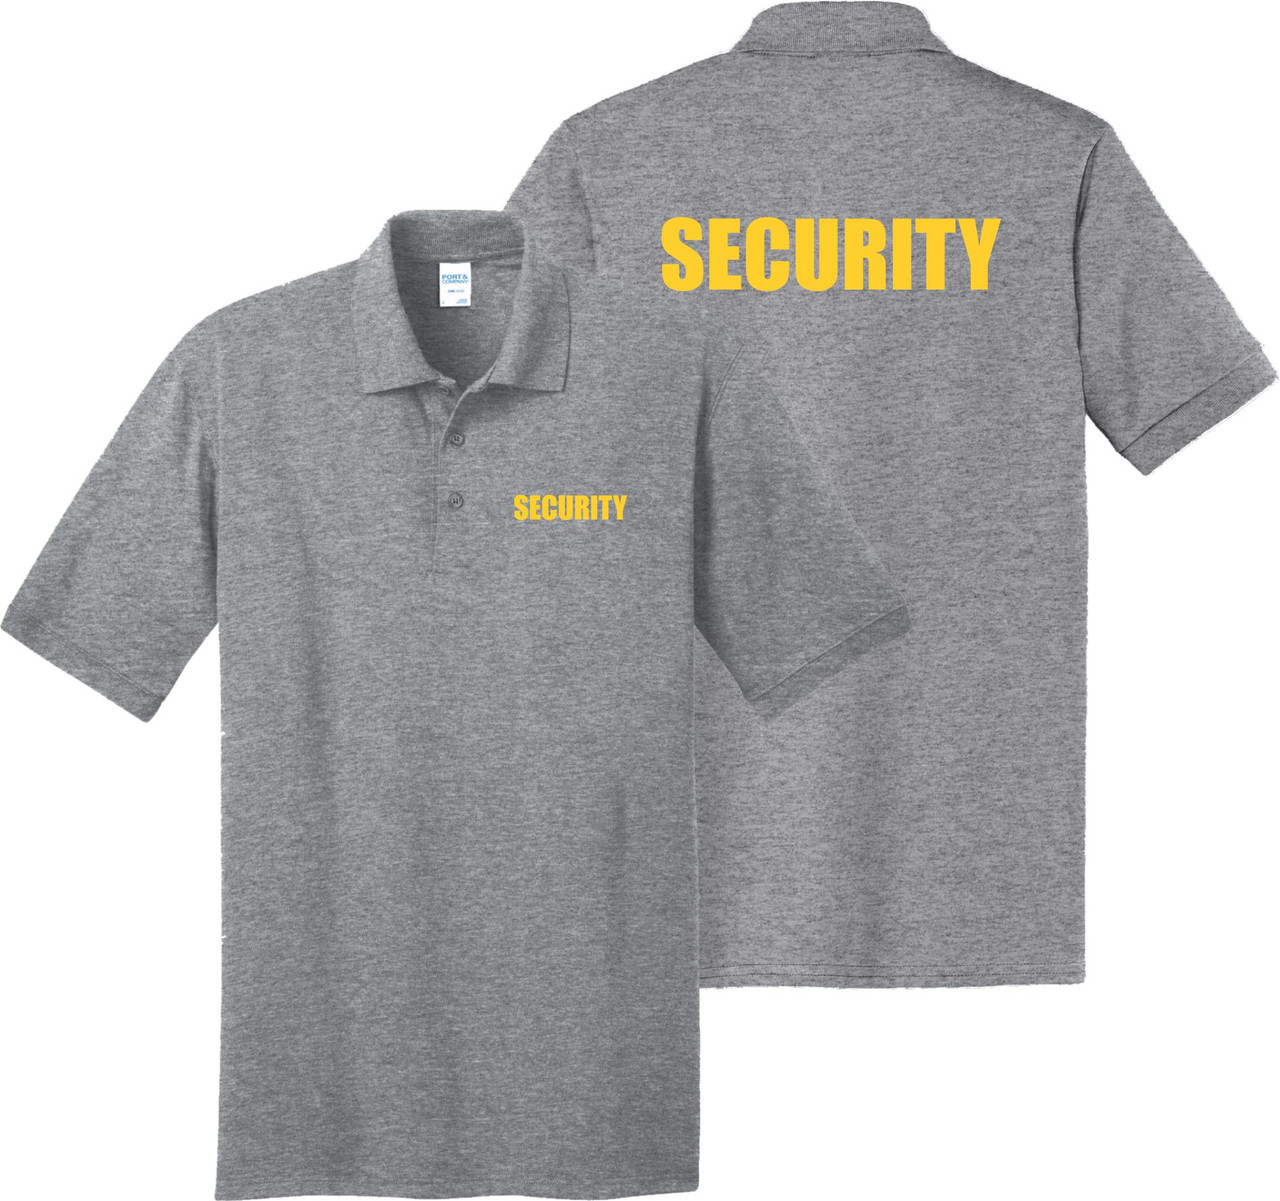 Event Staff Shirt for Security.  Security Polo Shirt.  Heather Grey Polo Security Shirt.